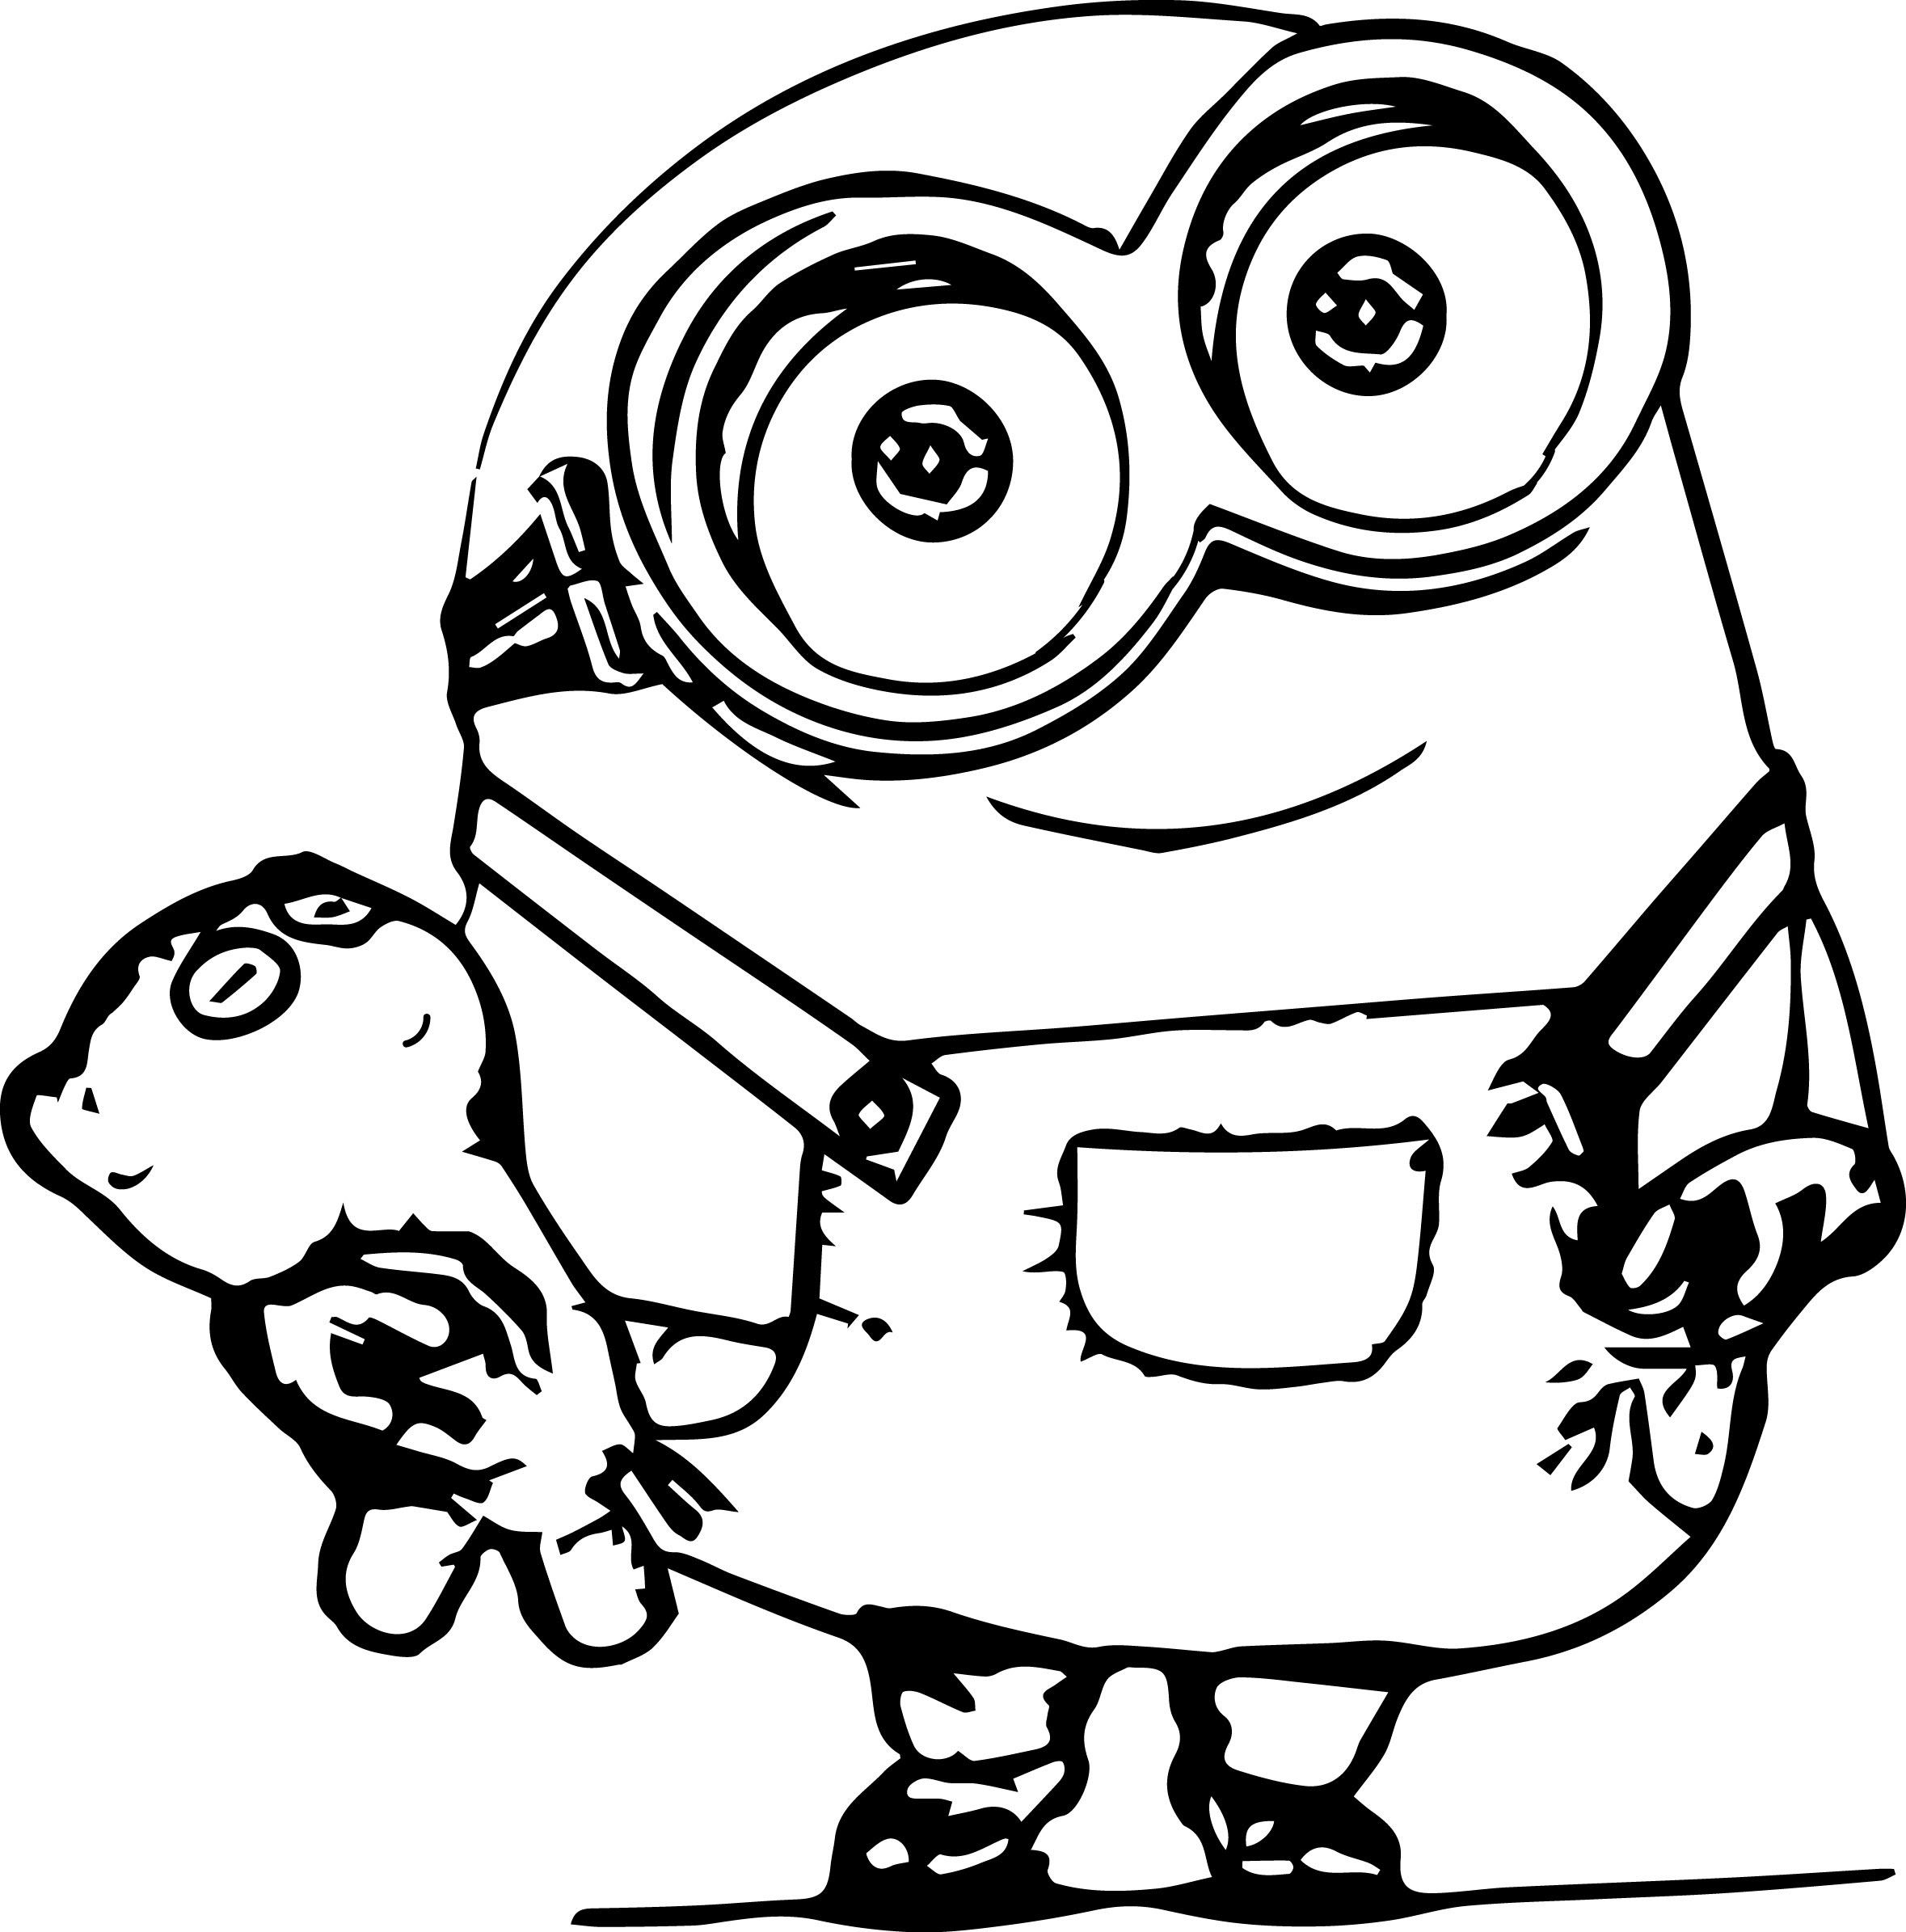 Minion Coloring Pages | Fotolip.com Rich image and wallpaper